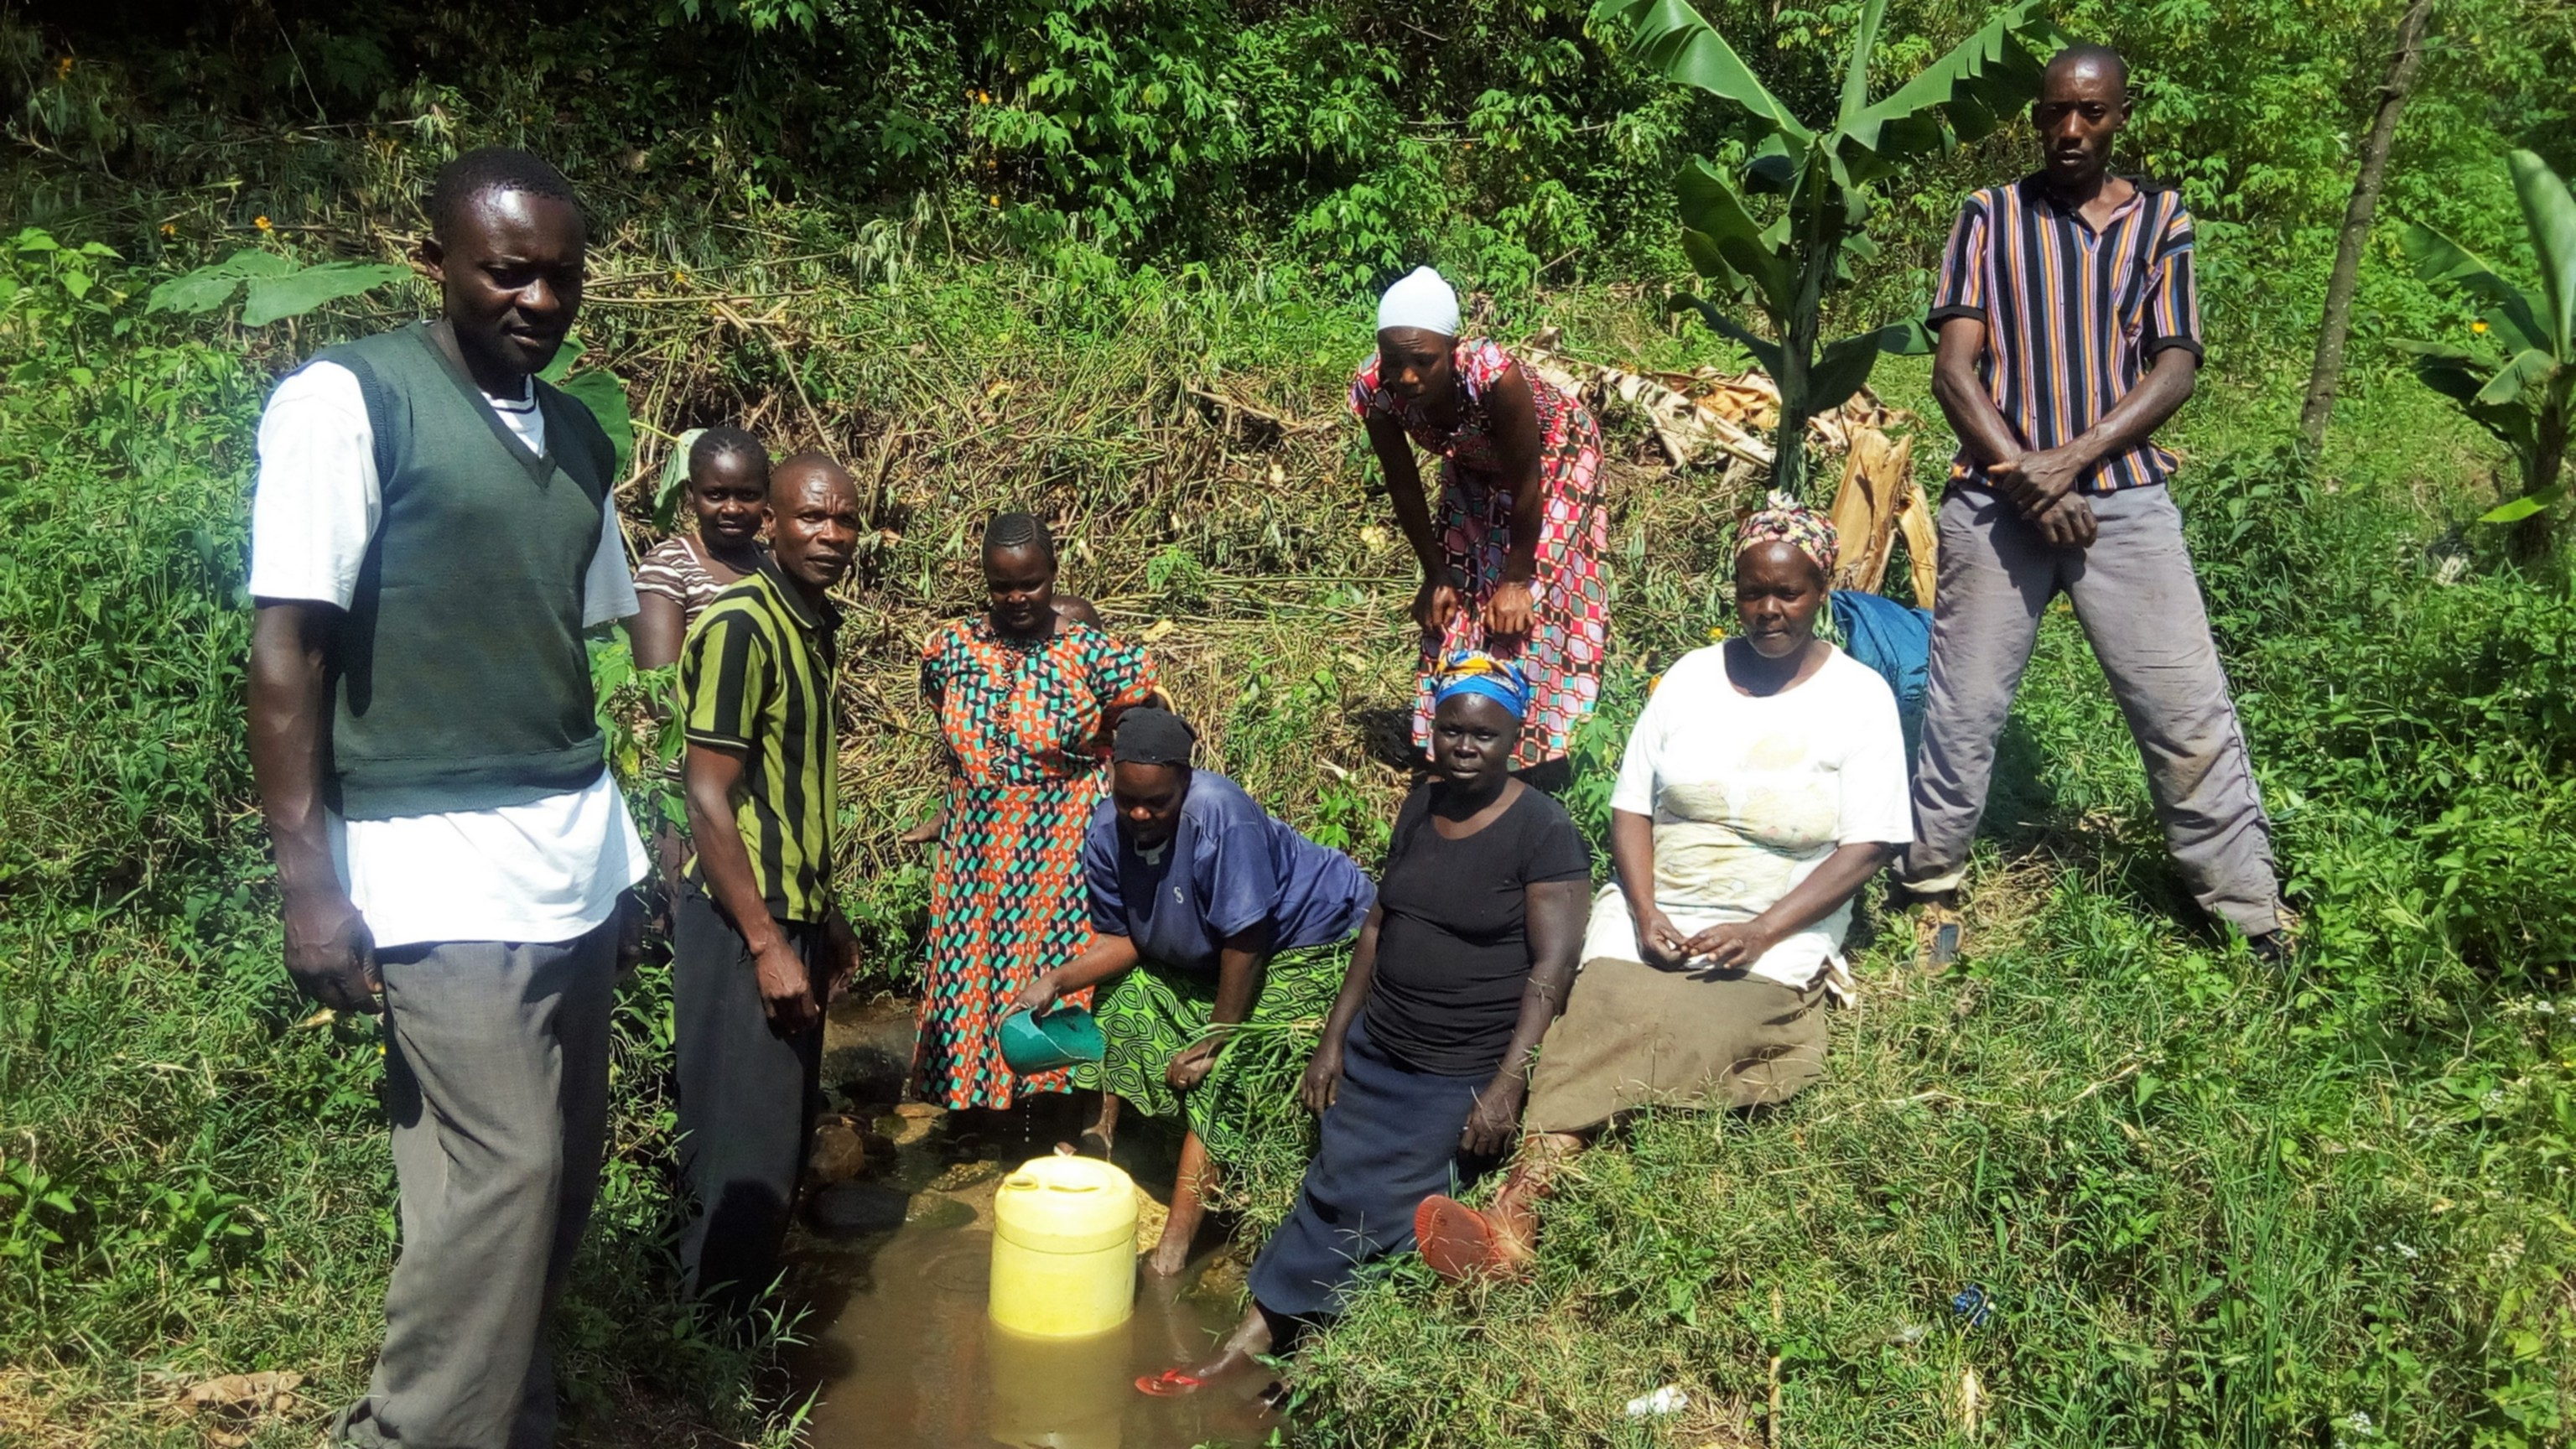 The Water Project : kenya18166-community-members-gathered-around-water-source